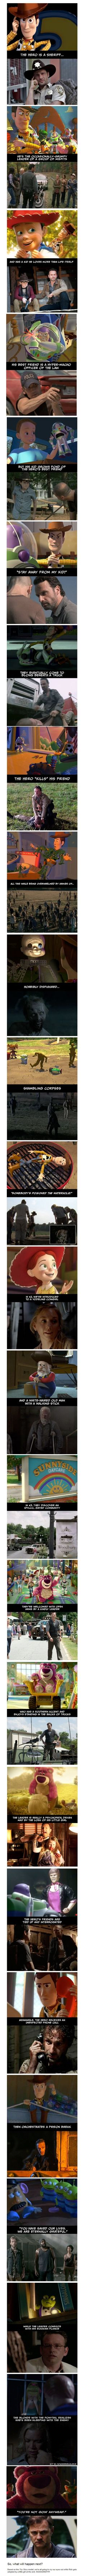 """Proof That """"The Walking Dead"""" and """"Toy Story"""" Have the Same Plot 